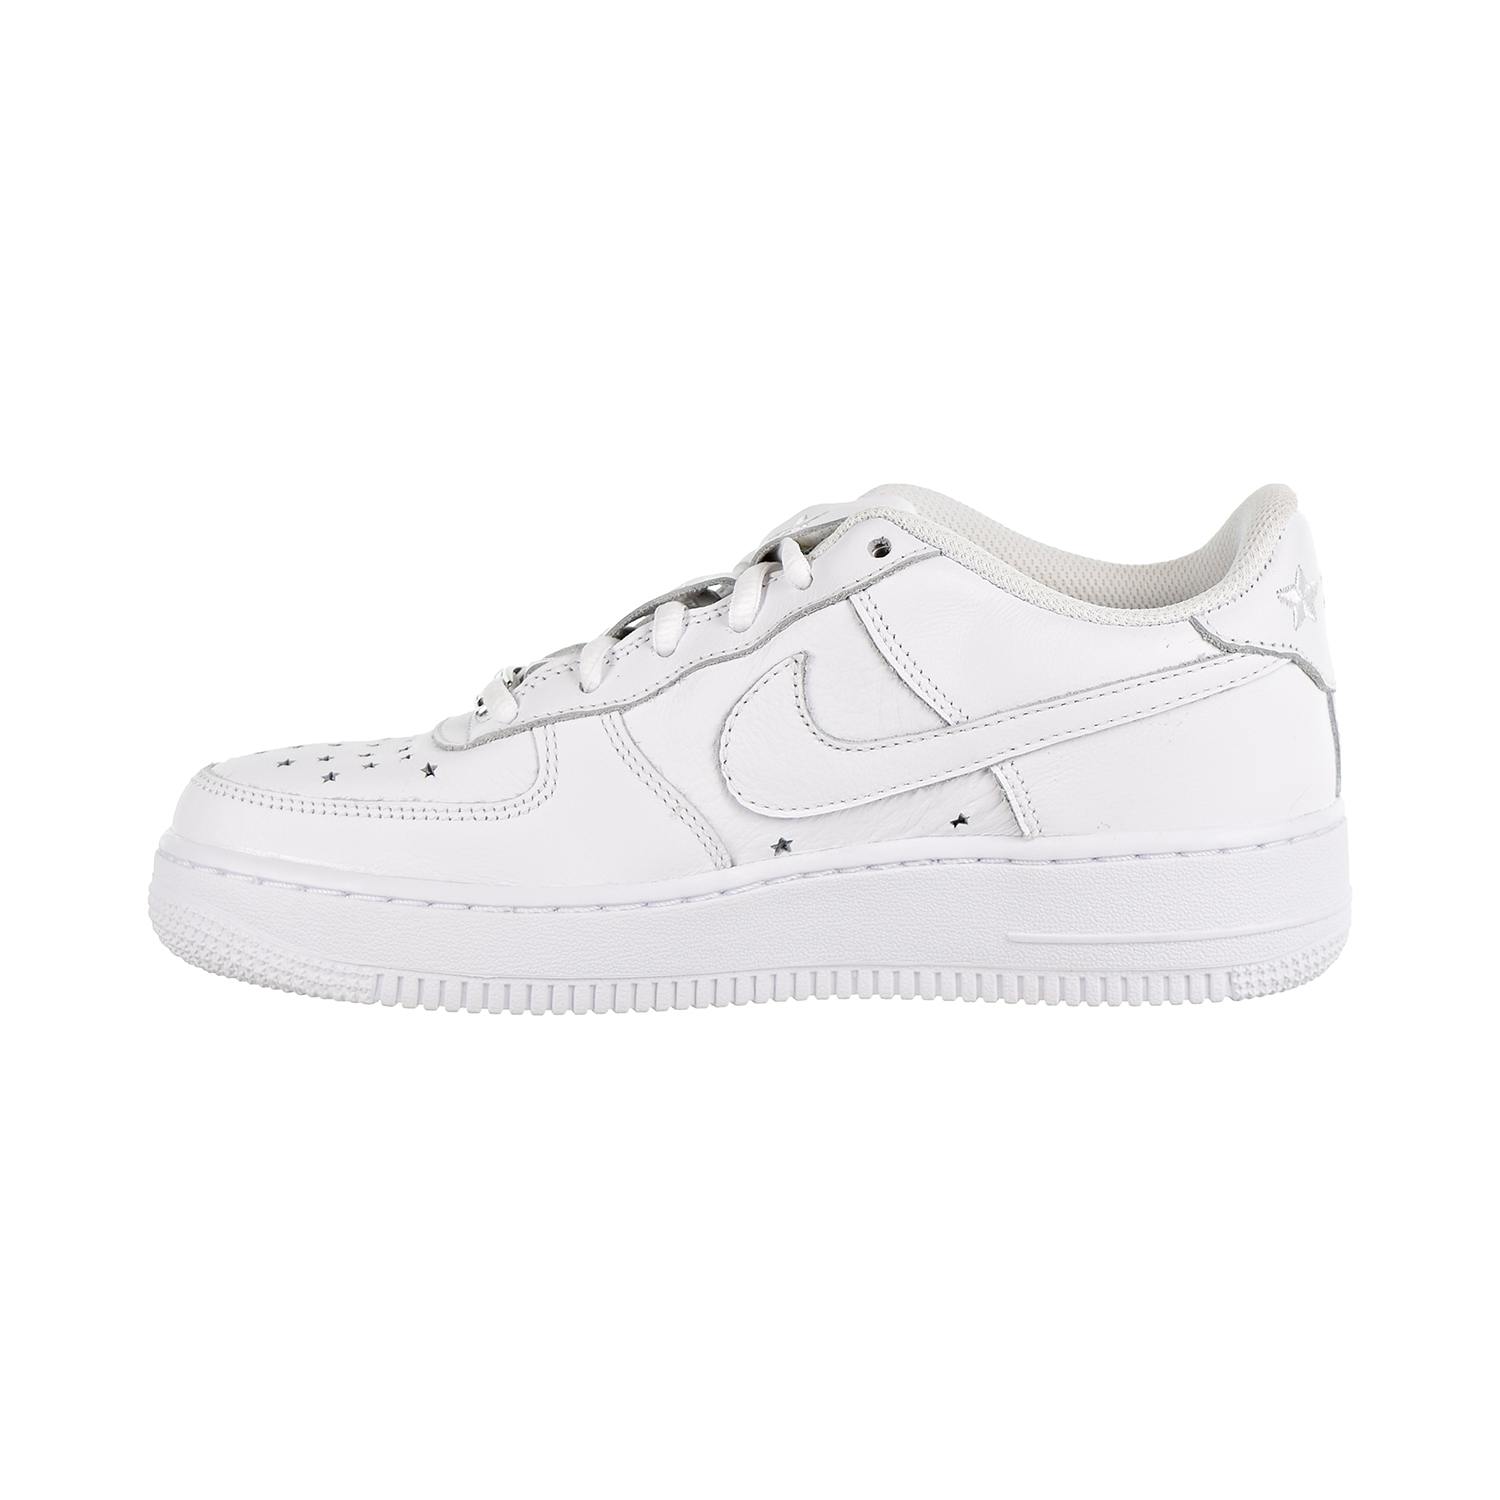 b78f0394a51 Details about Nike Air Force 1 QS Soft Leather GS Big Kids  Shoes  White White Navy AR0688-100